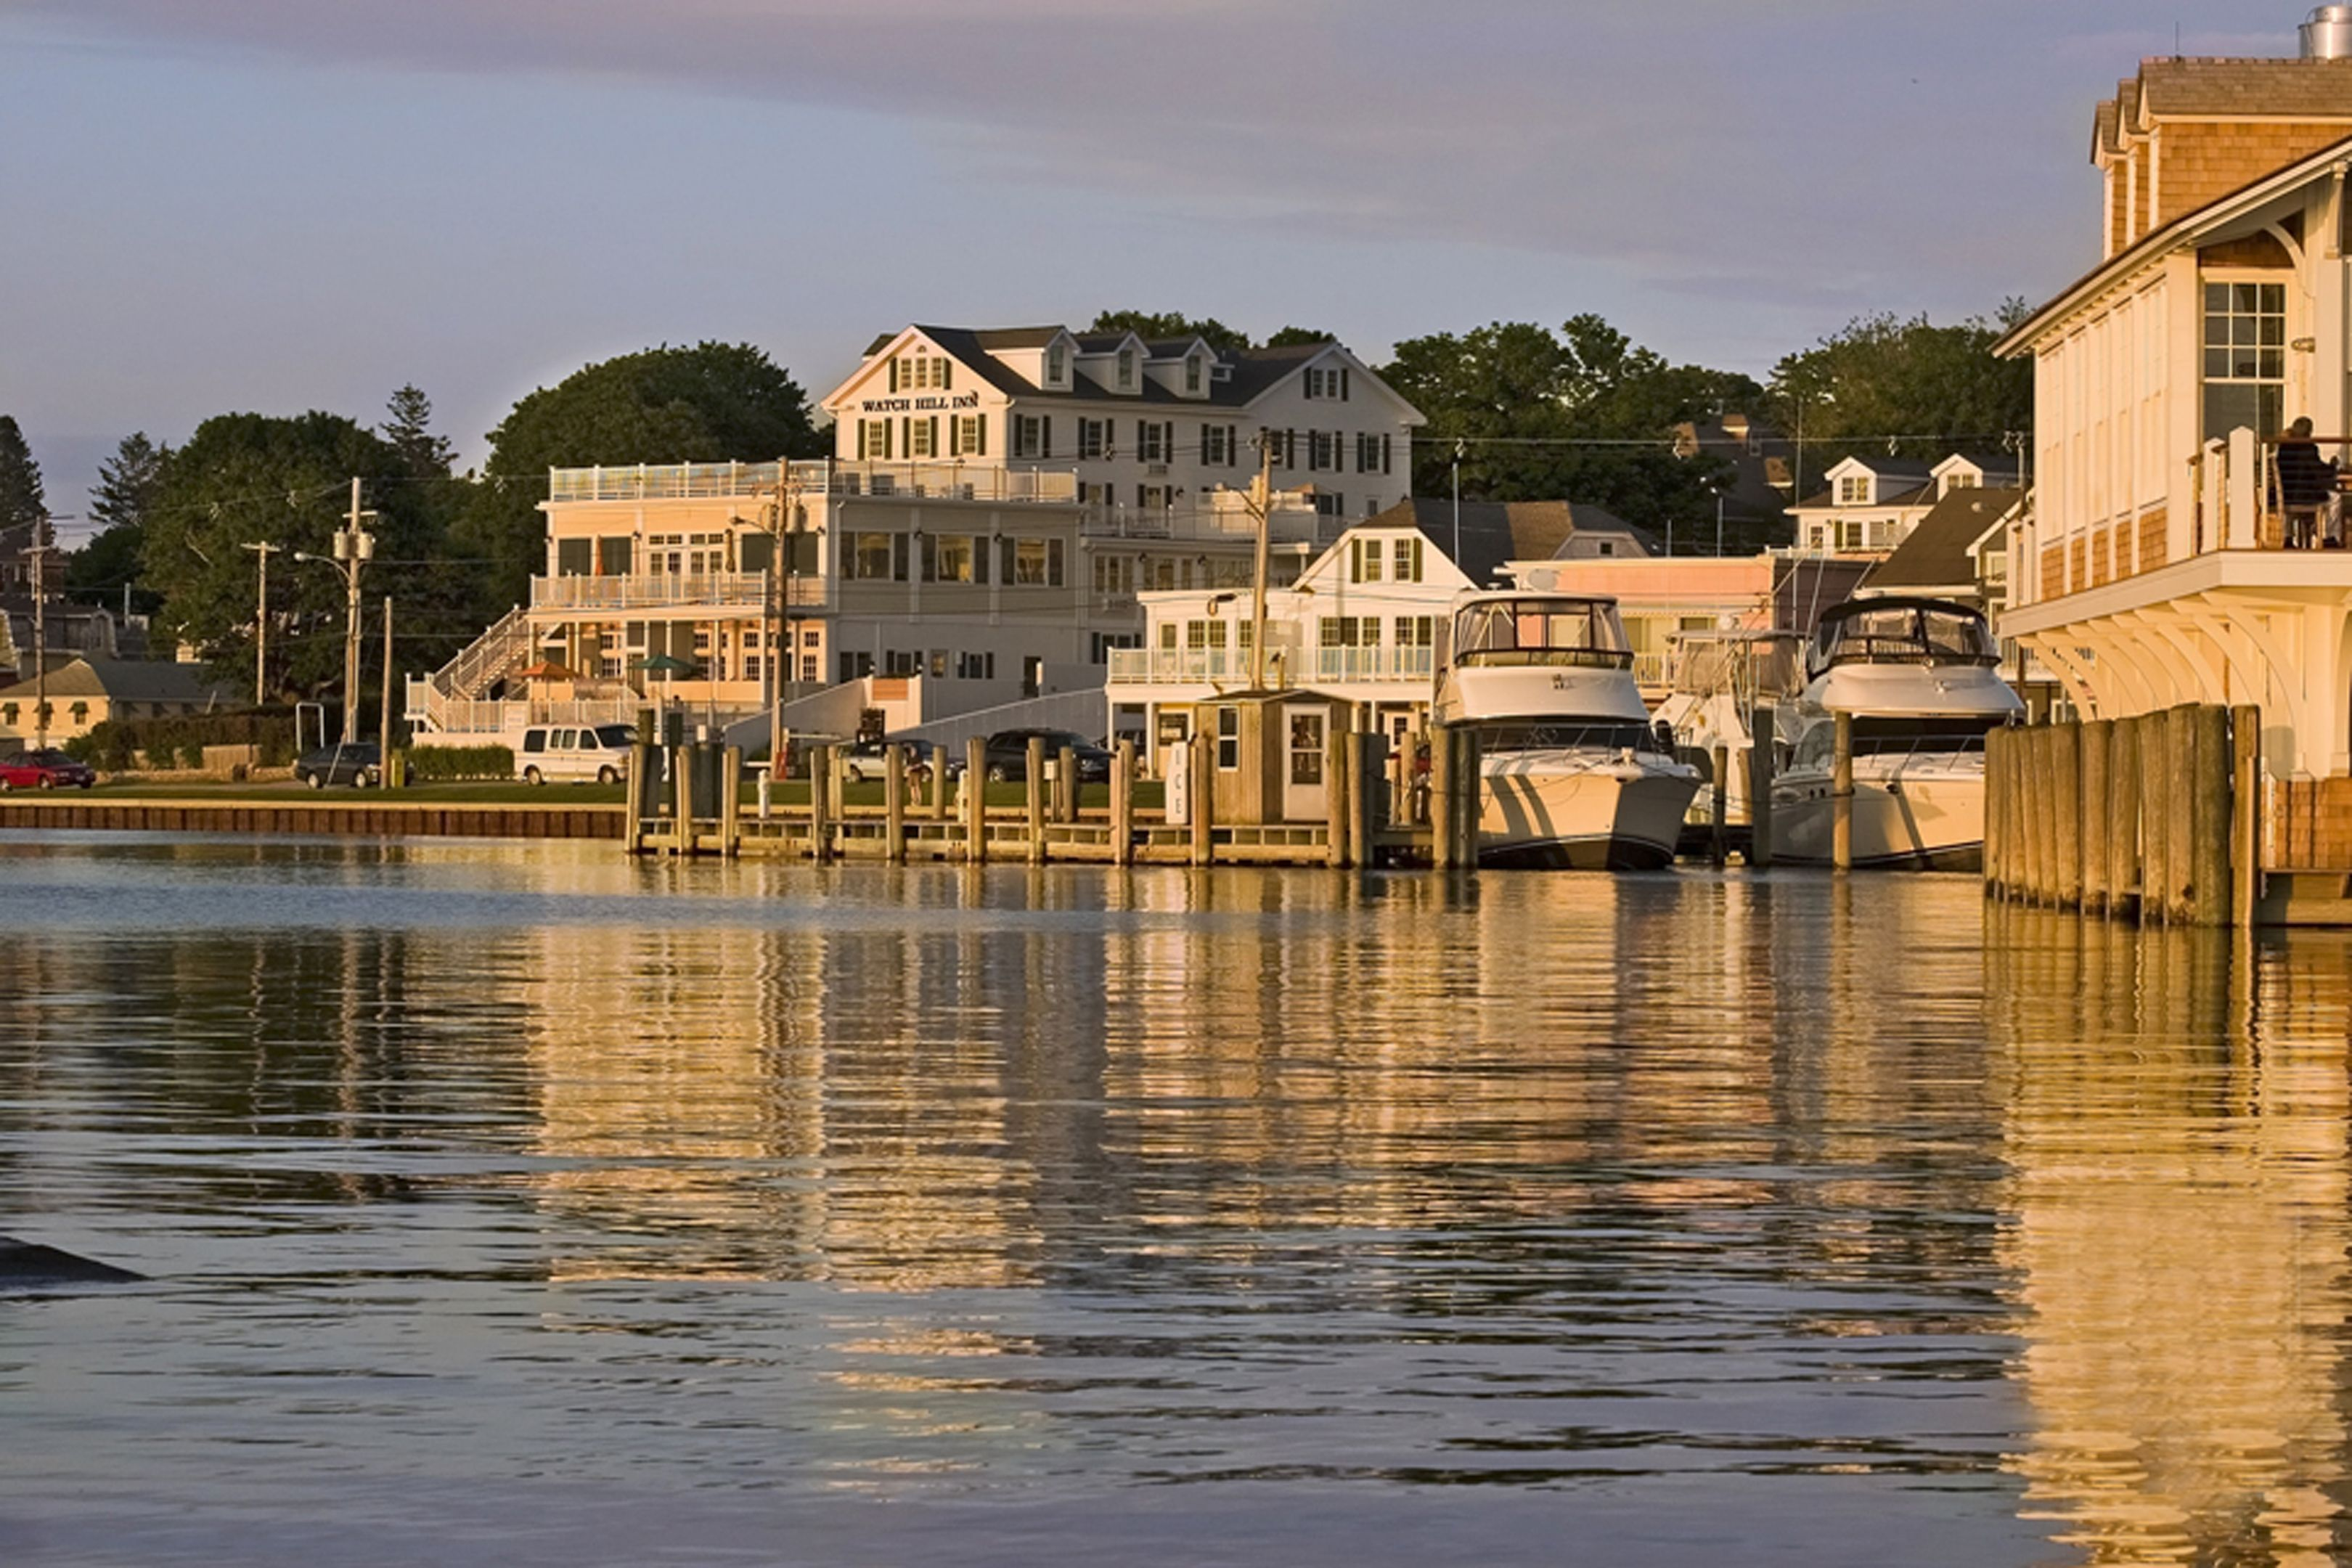 Westerly RI...I can not wait to go home in August! The